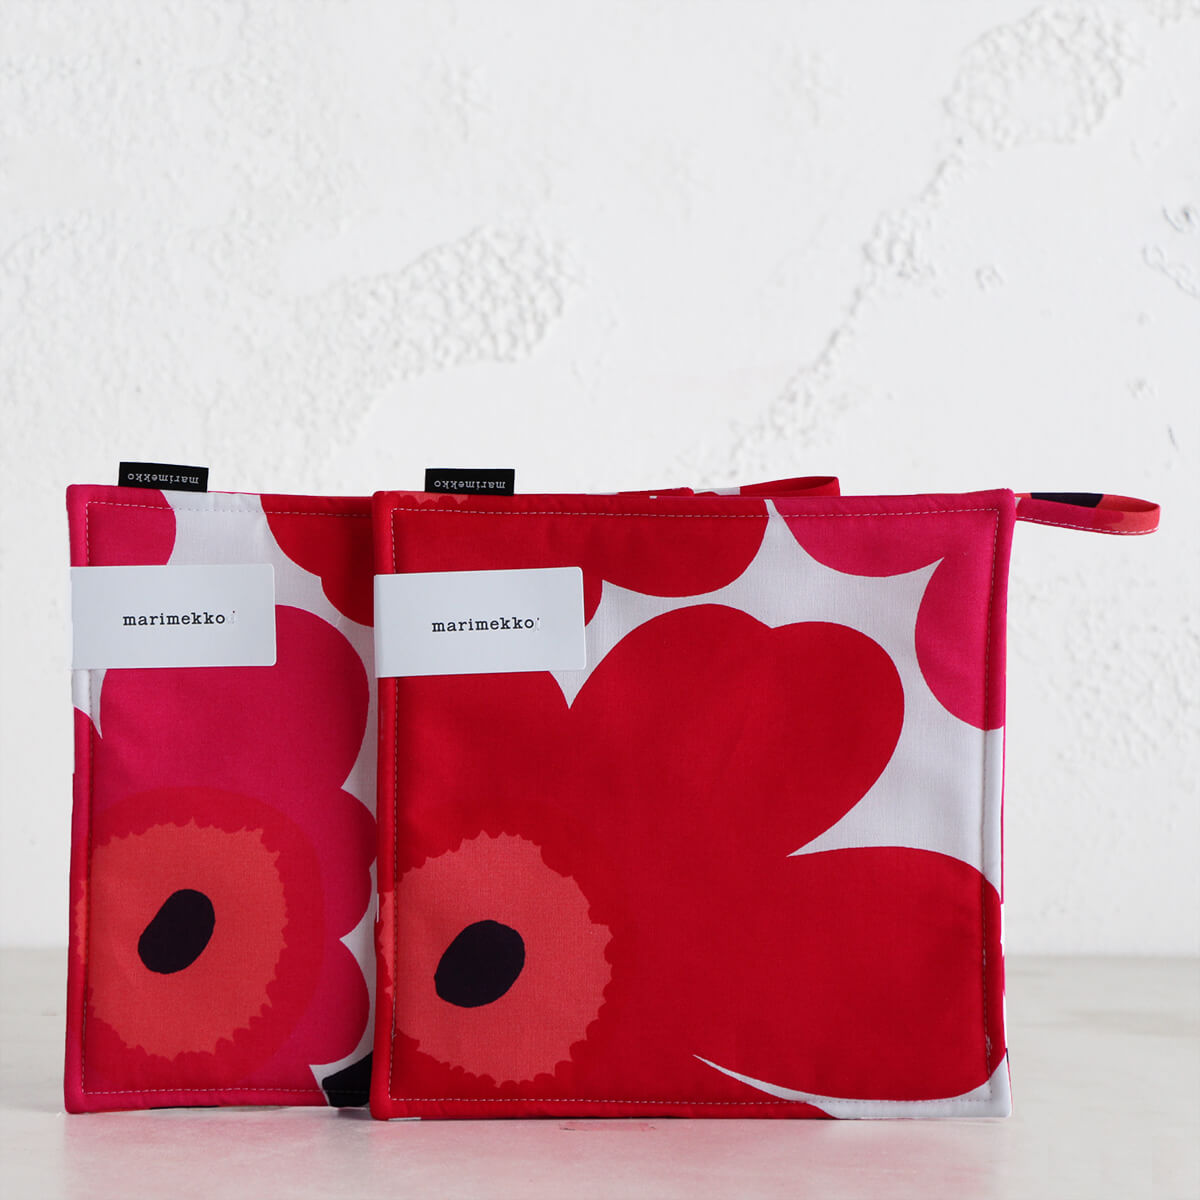 MARIMEKKO  |  PIENI UNIKKO POT HOLDER BUNDLE  |  RED + ORANGE + PINK  |  OVEN MITT